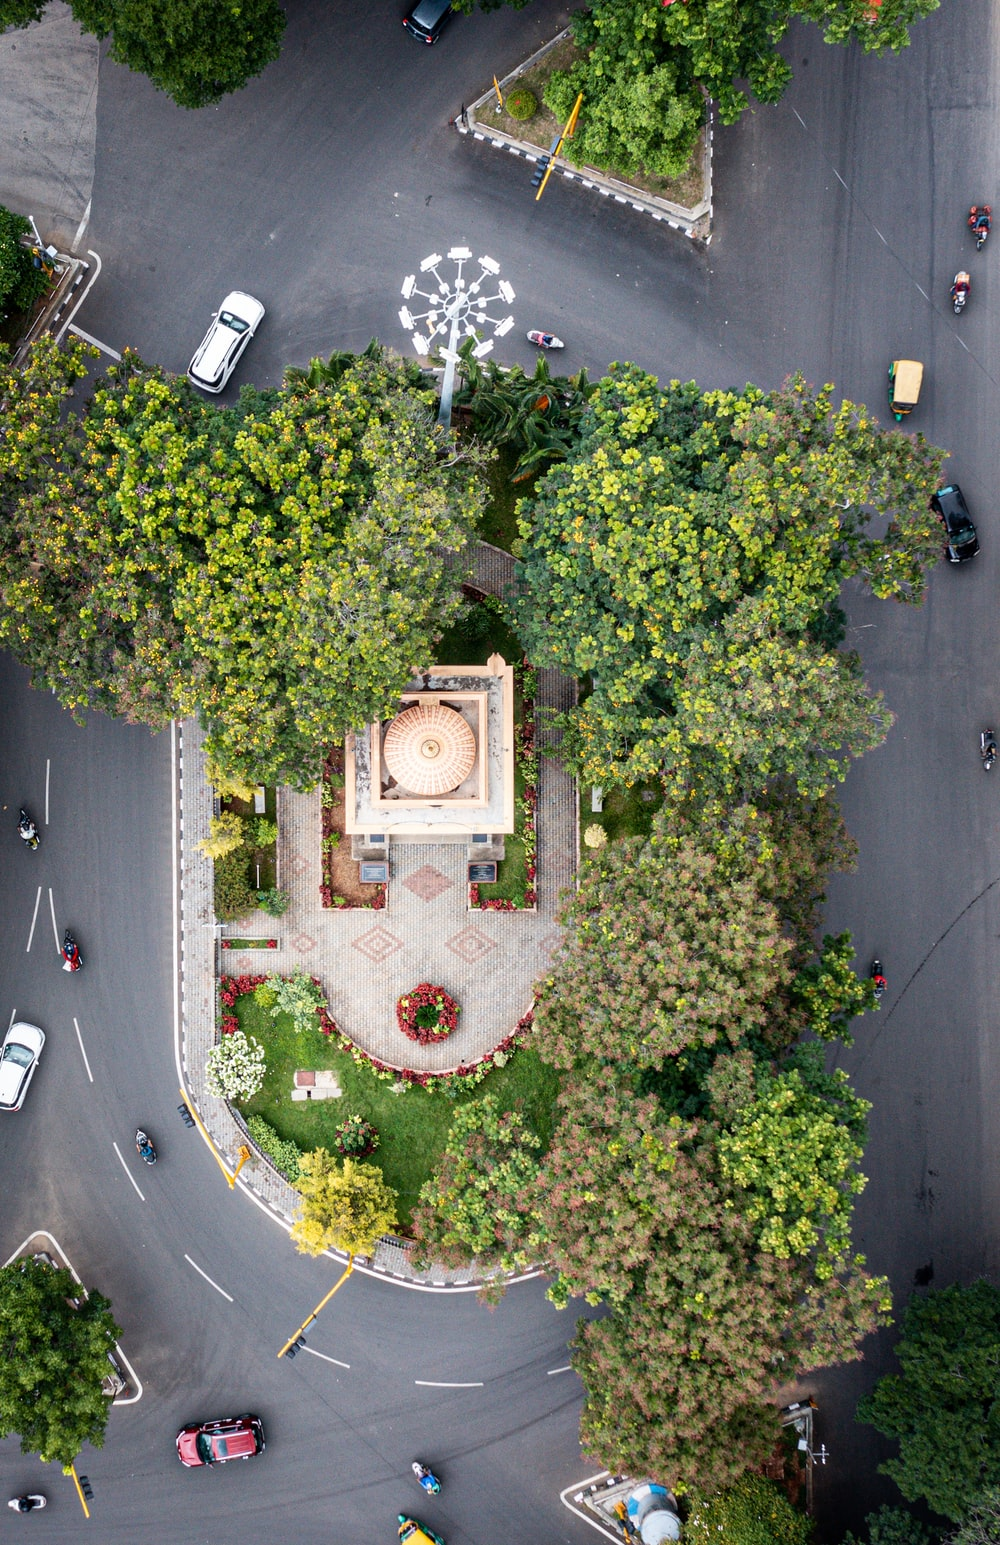 aerial view of green trees and plants